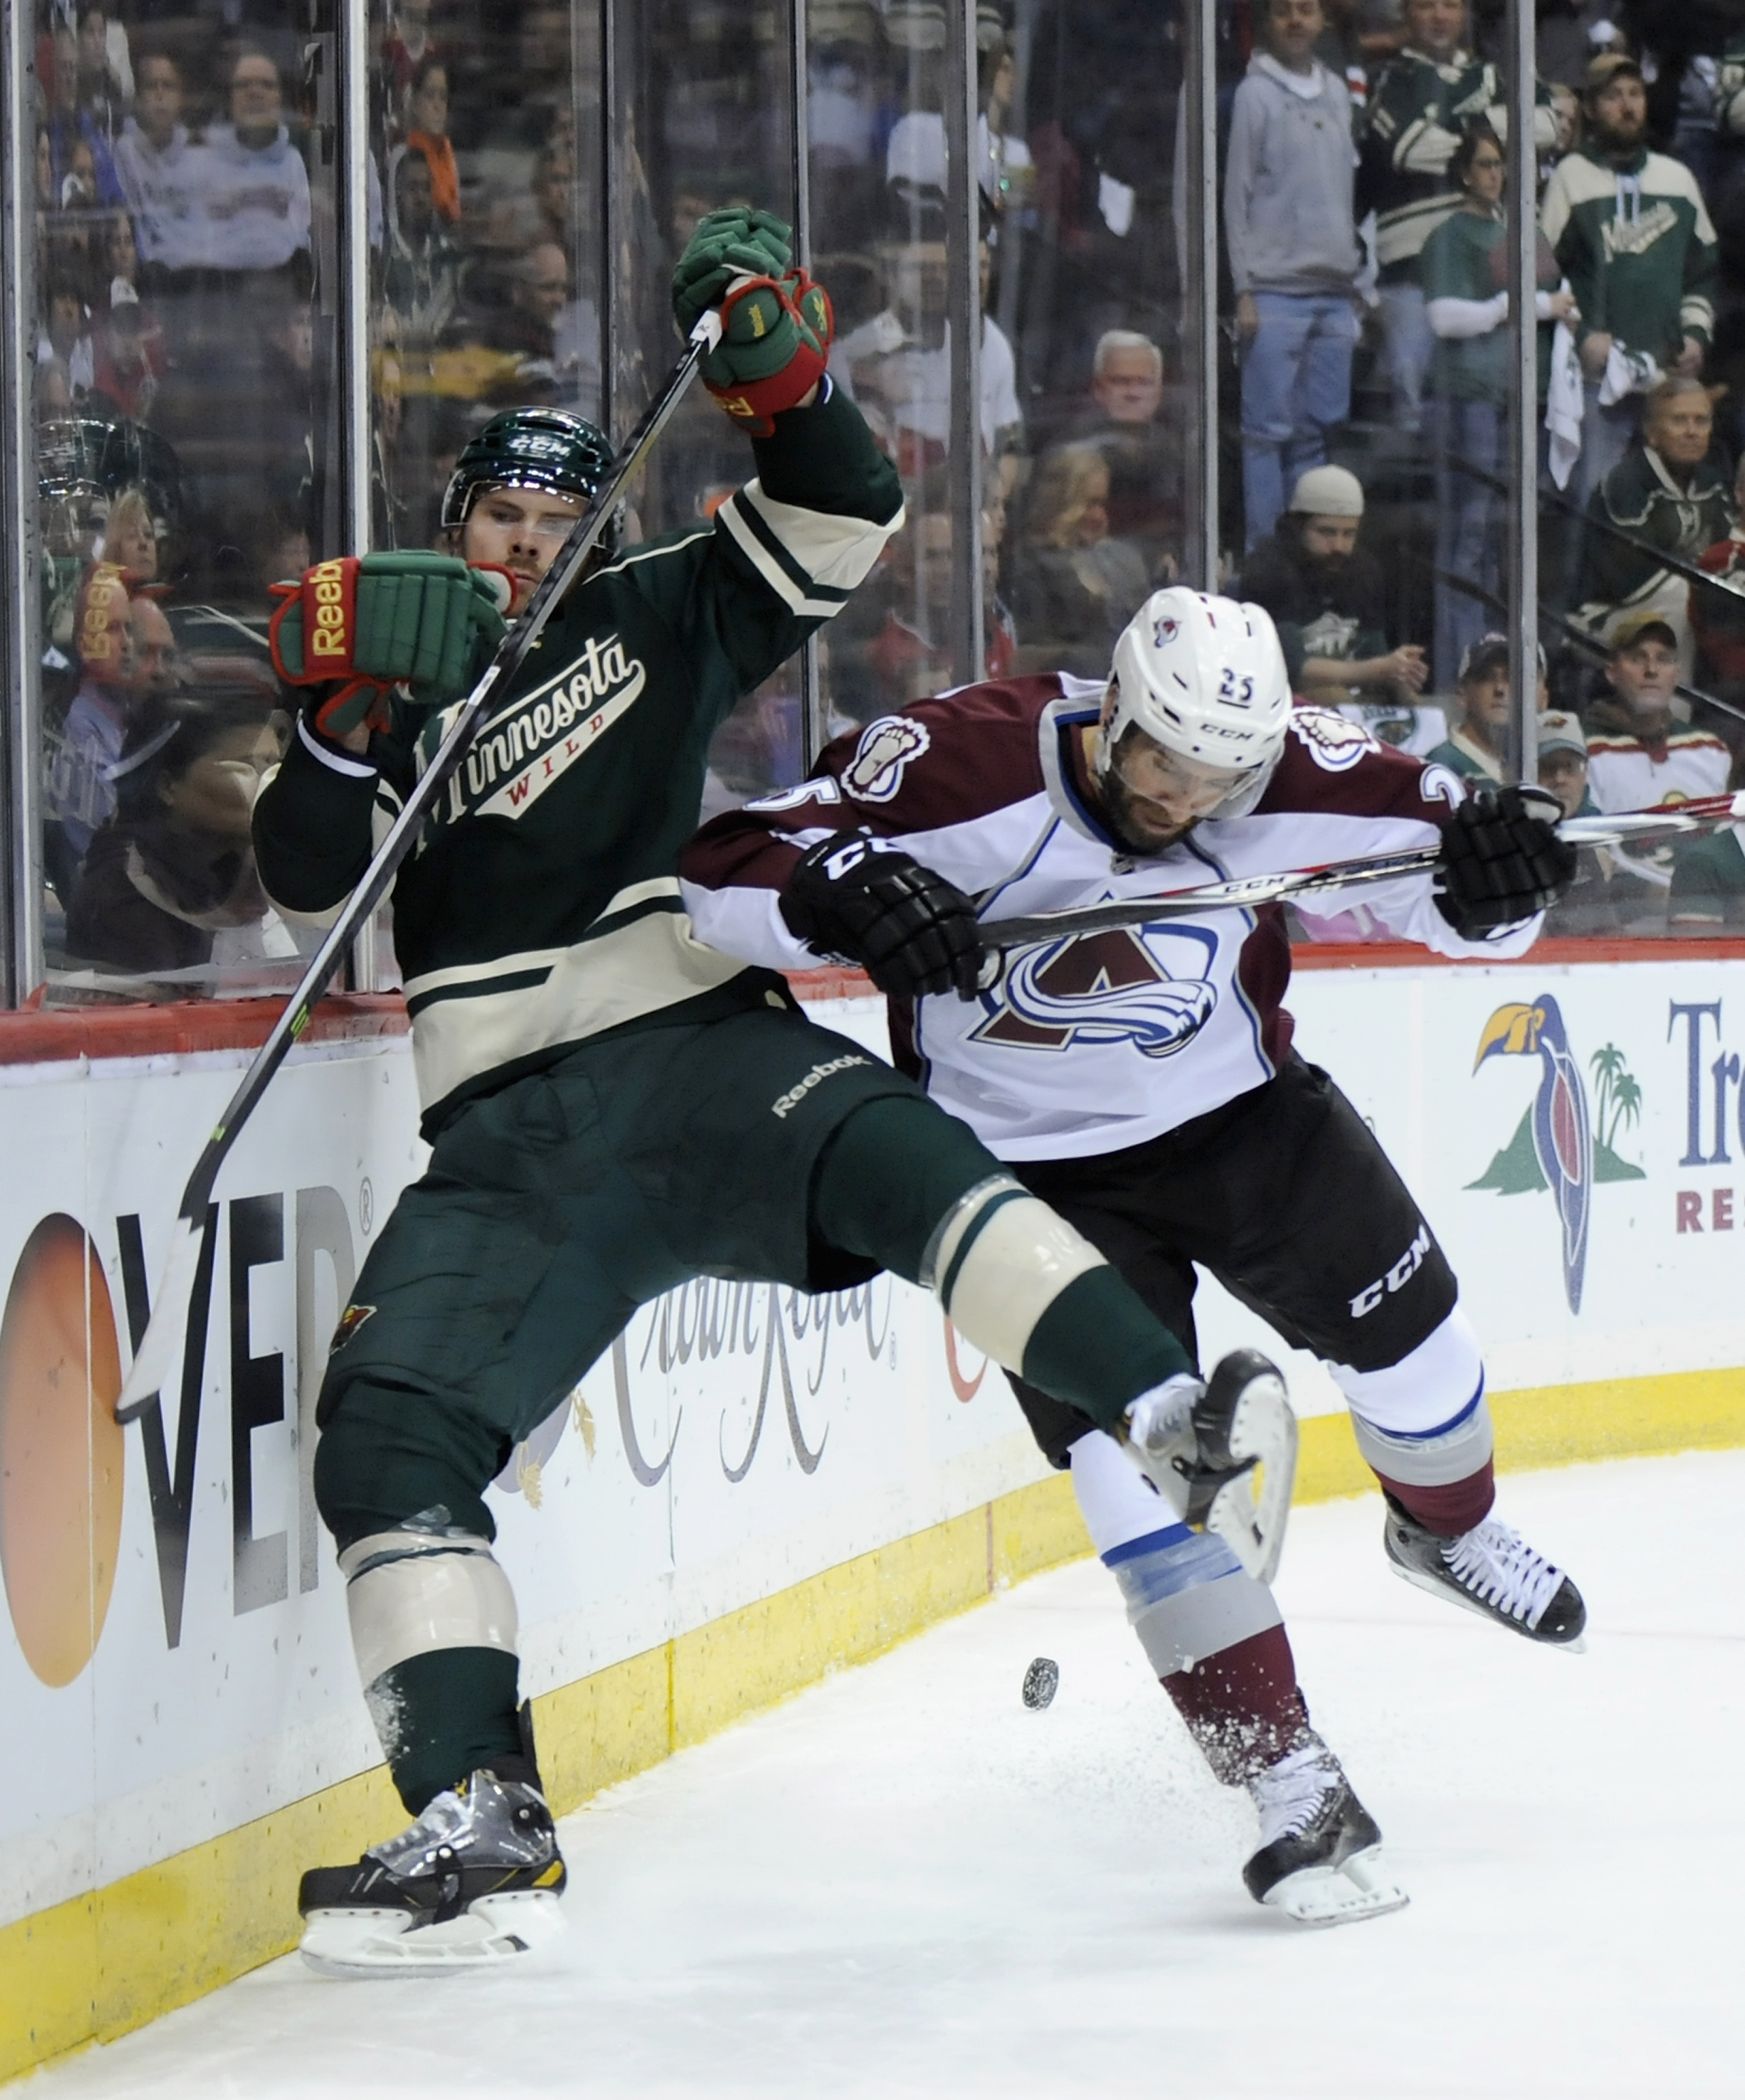 Maxime Talbot #25 of the Colorado Avalanche checks Nate Prosser #39 of the Minnesota Wild into the boards during the first period in Game Four of the First Round of the 2014 NHL Stanley Cup Playoffs on April 24, 2014 at Xcel Energy Center in St Paul, Minnesota. (Photo by Hannah Foslien/Getty Images)